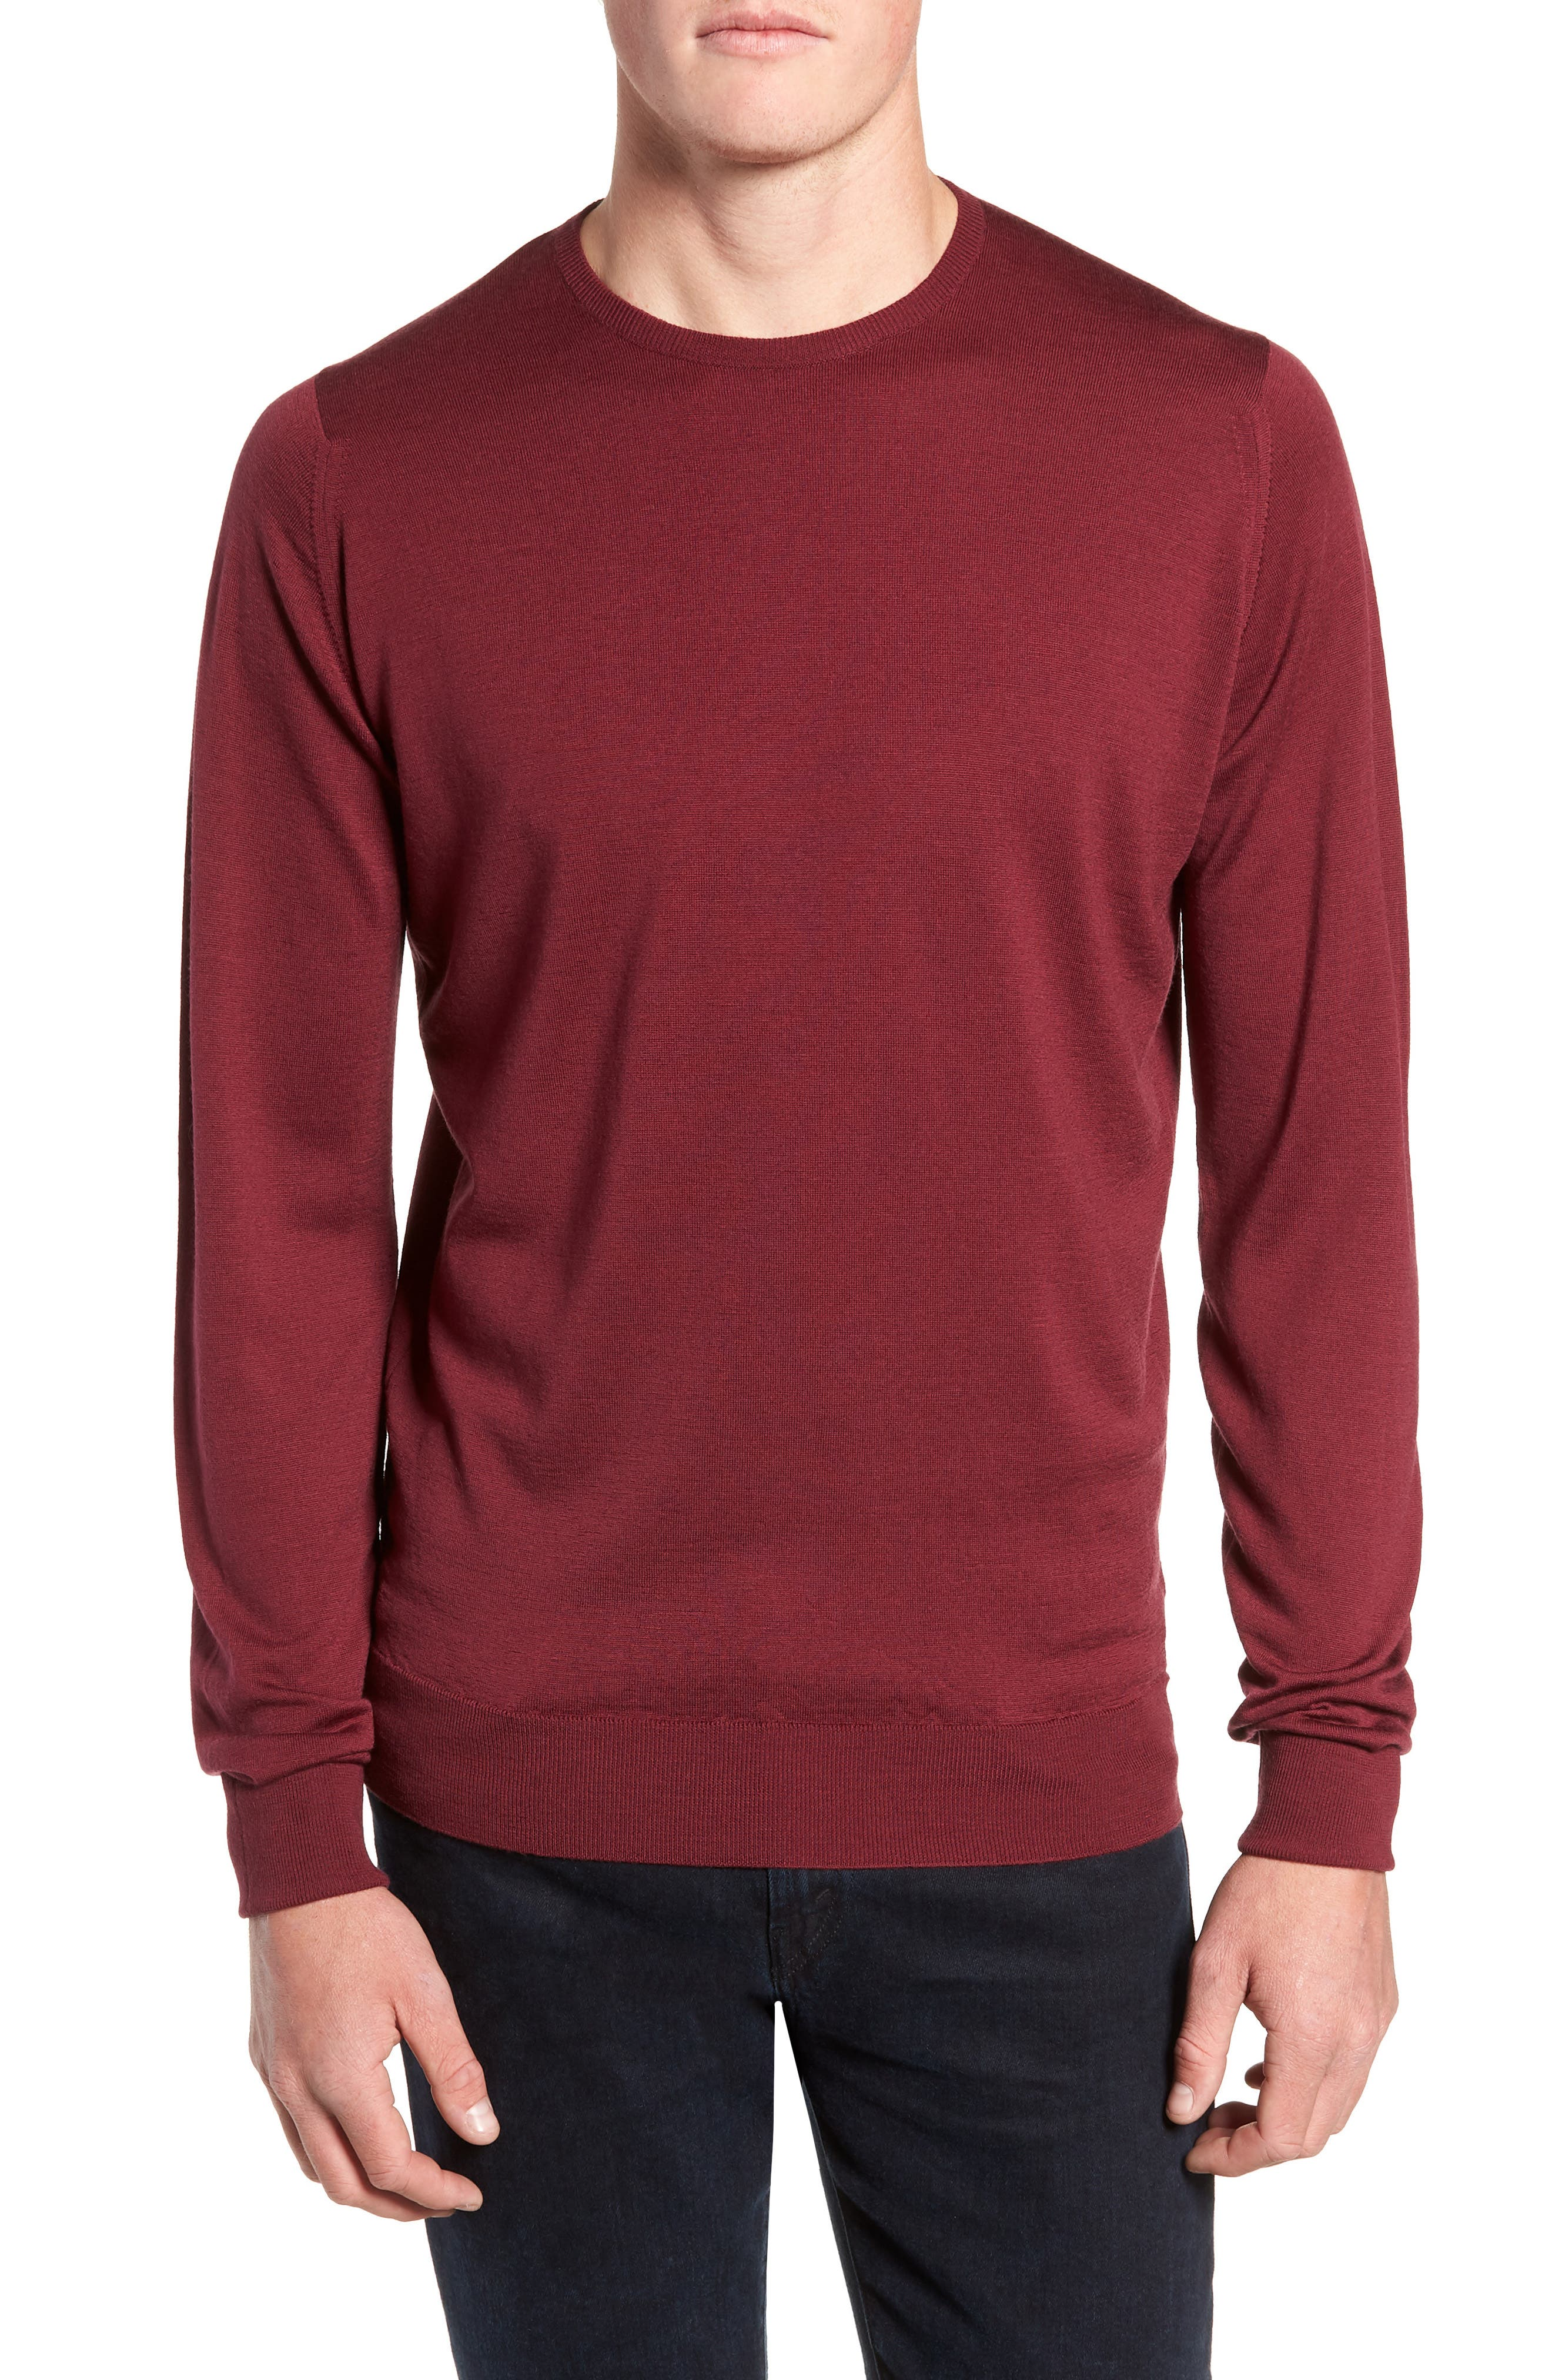 'Marcus' Easy Fit Crewneck Wool Sweater,                         Main,                         color, BOREDAUX